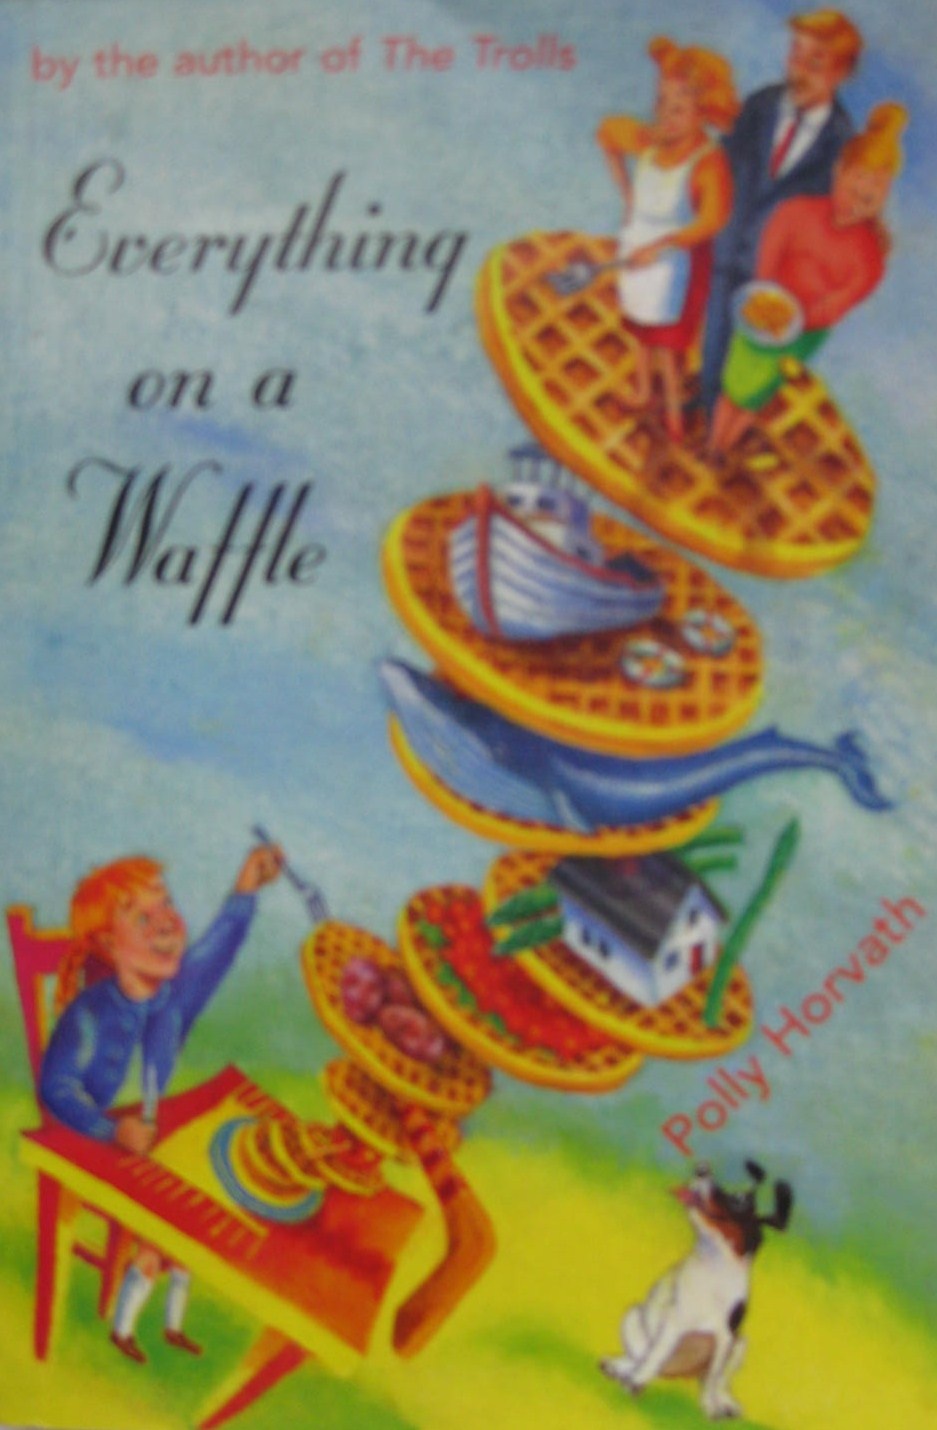 Everything on a Waffle book cover